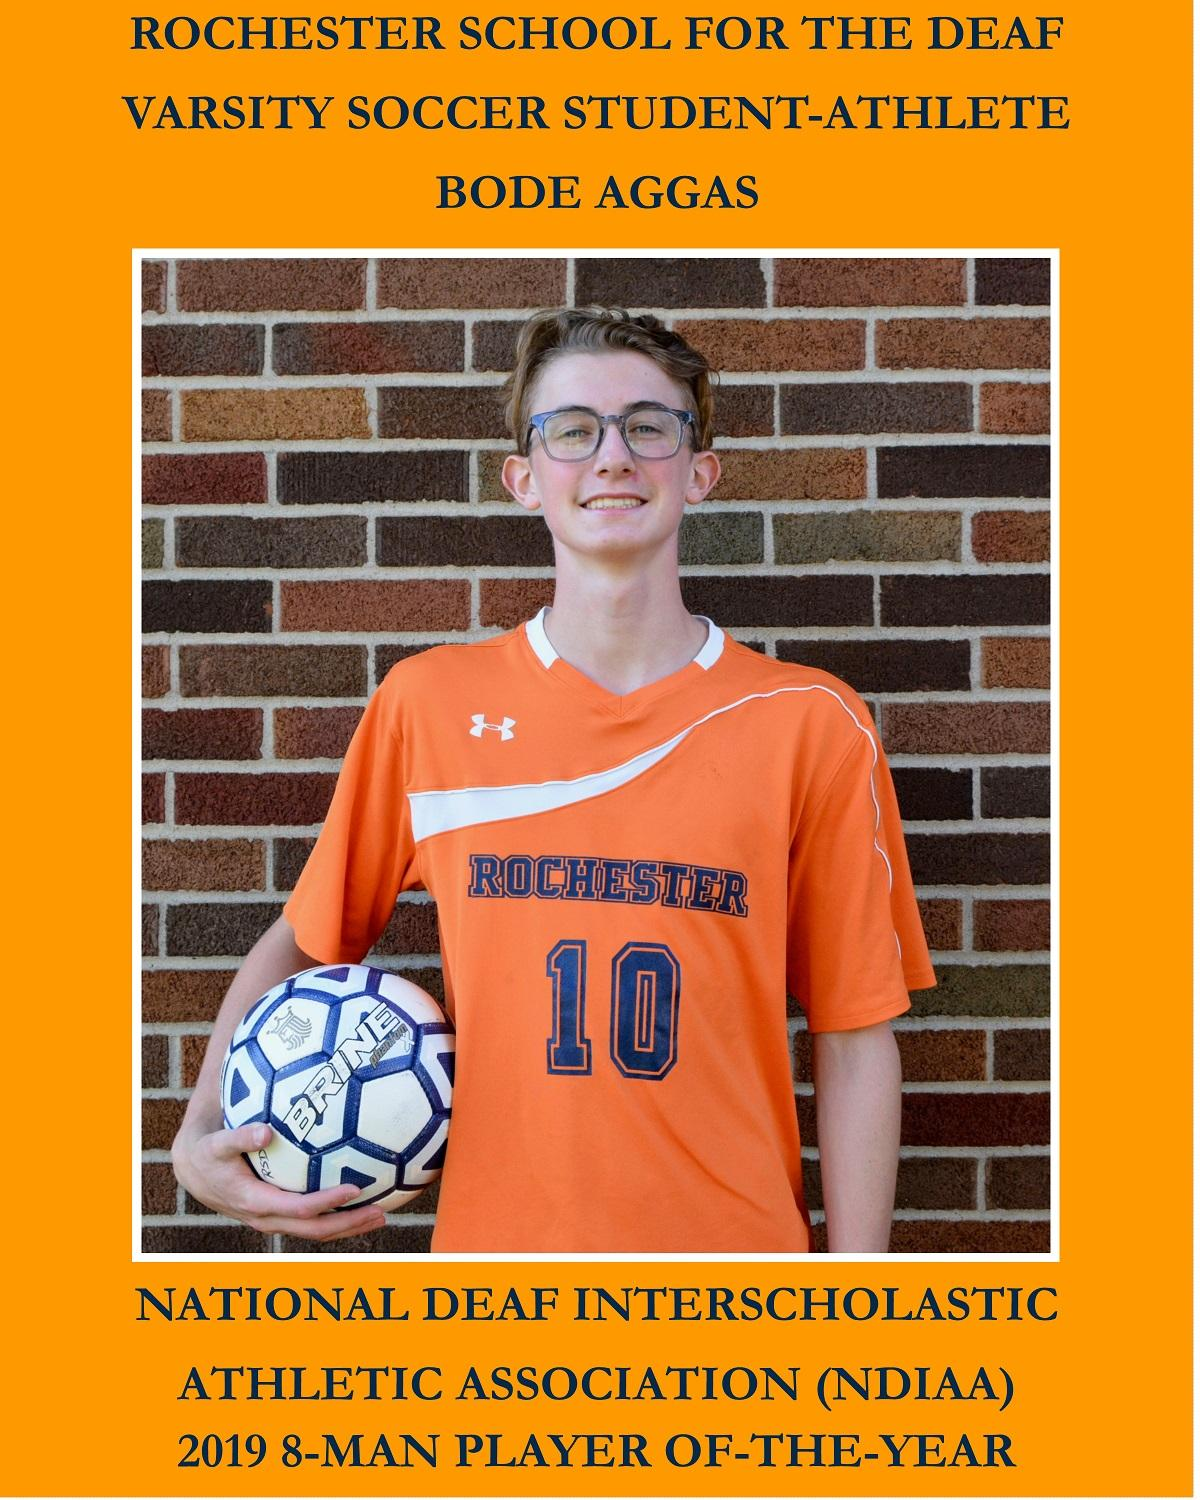 Bode Aggas 2019 NDIAA Division II Soccer Player of-the-Year